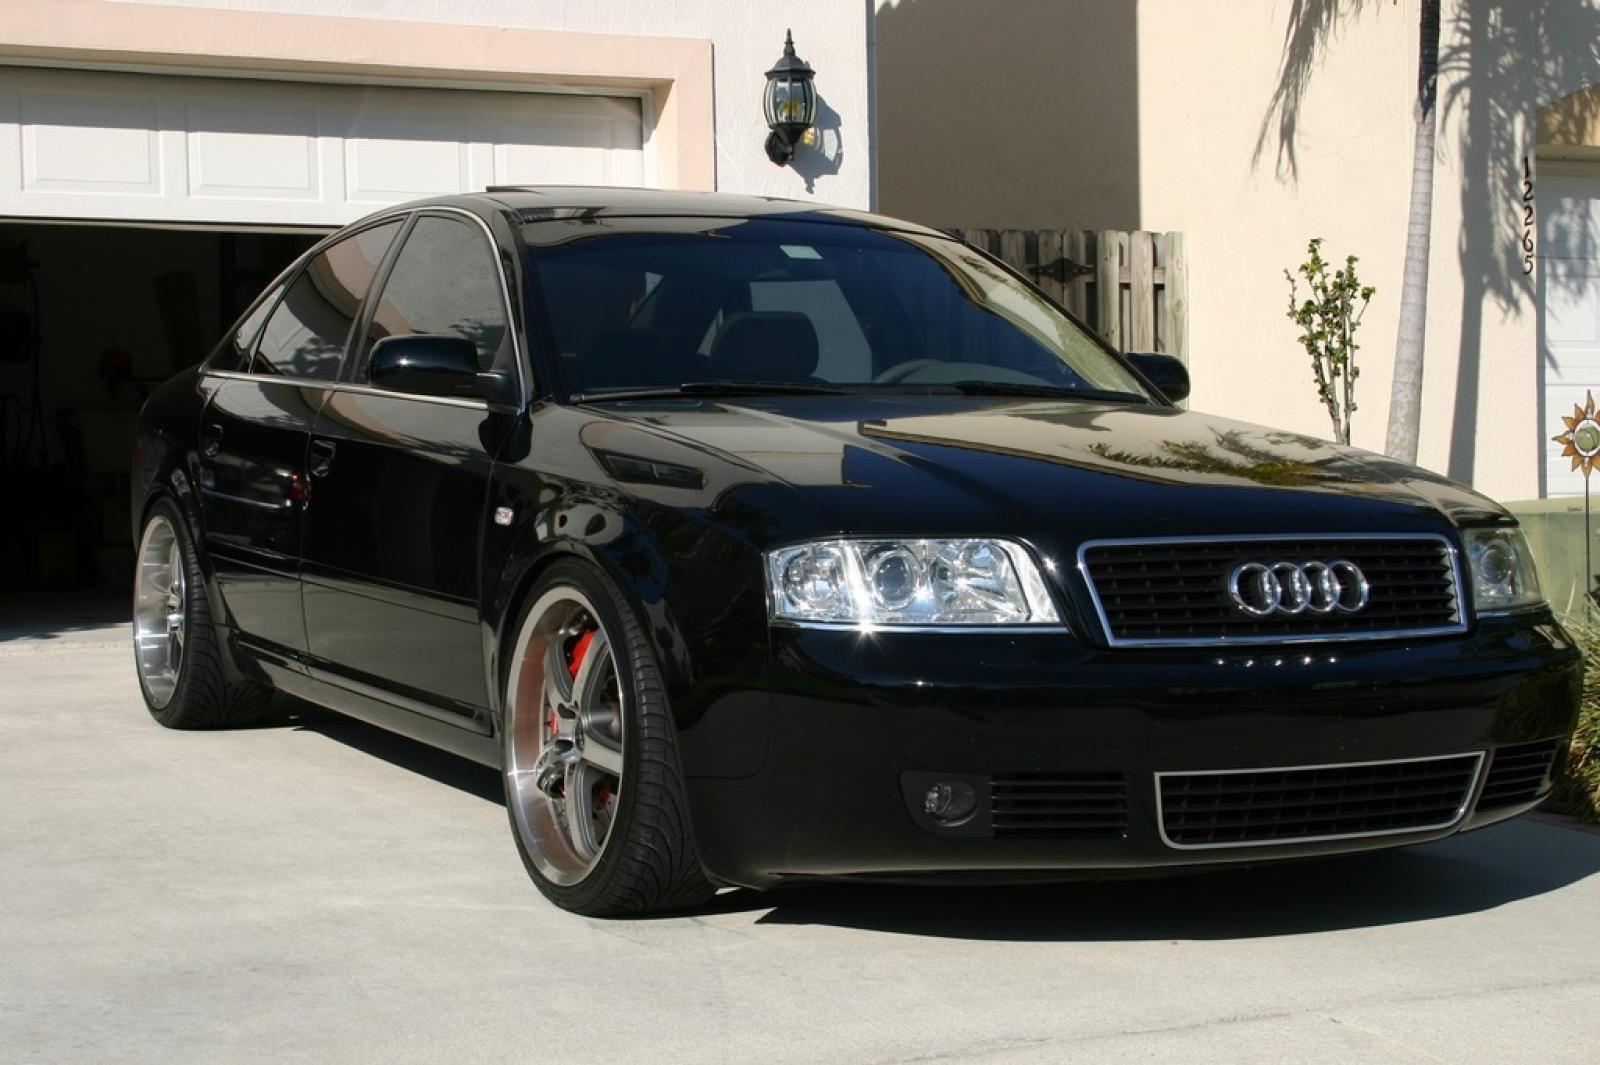 2002 audi a6 information and photos zomb drive. Black Bedroom Furniture Sets. Home Design Ideas